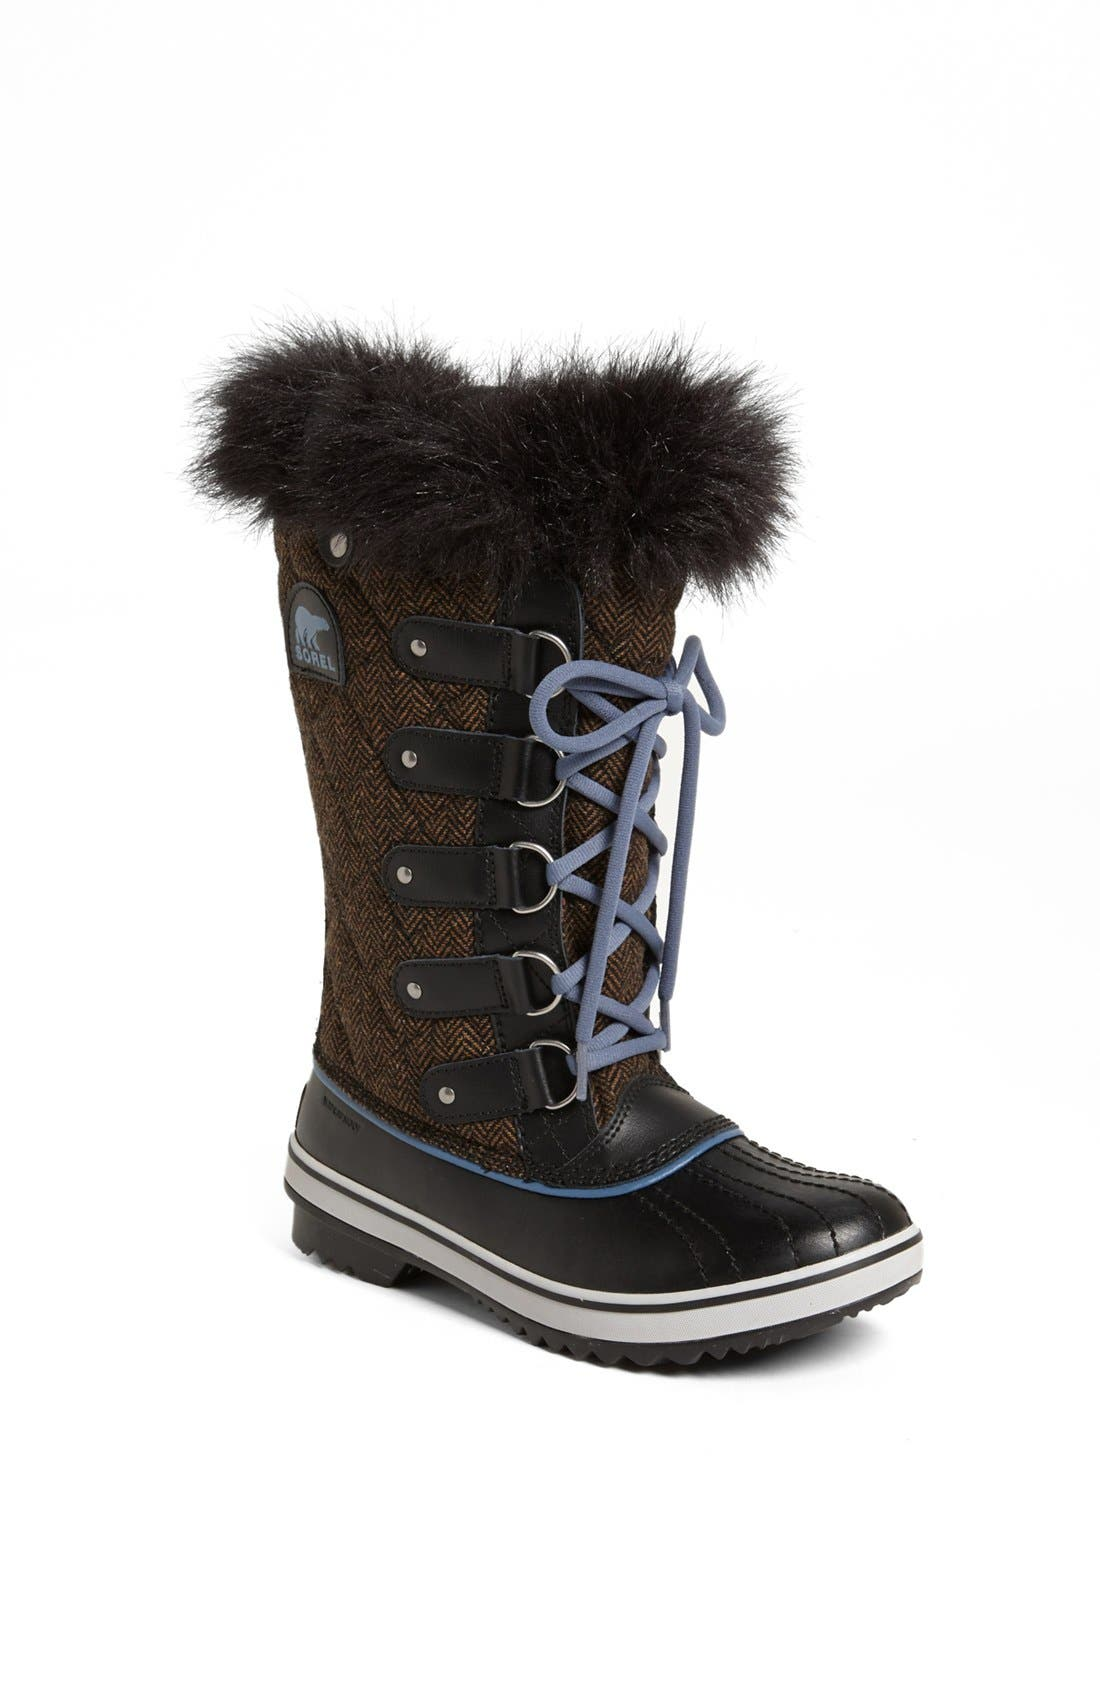 Main Image - SOREL 'Tofino' Waterproof Boot